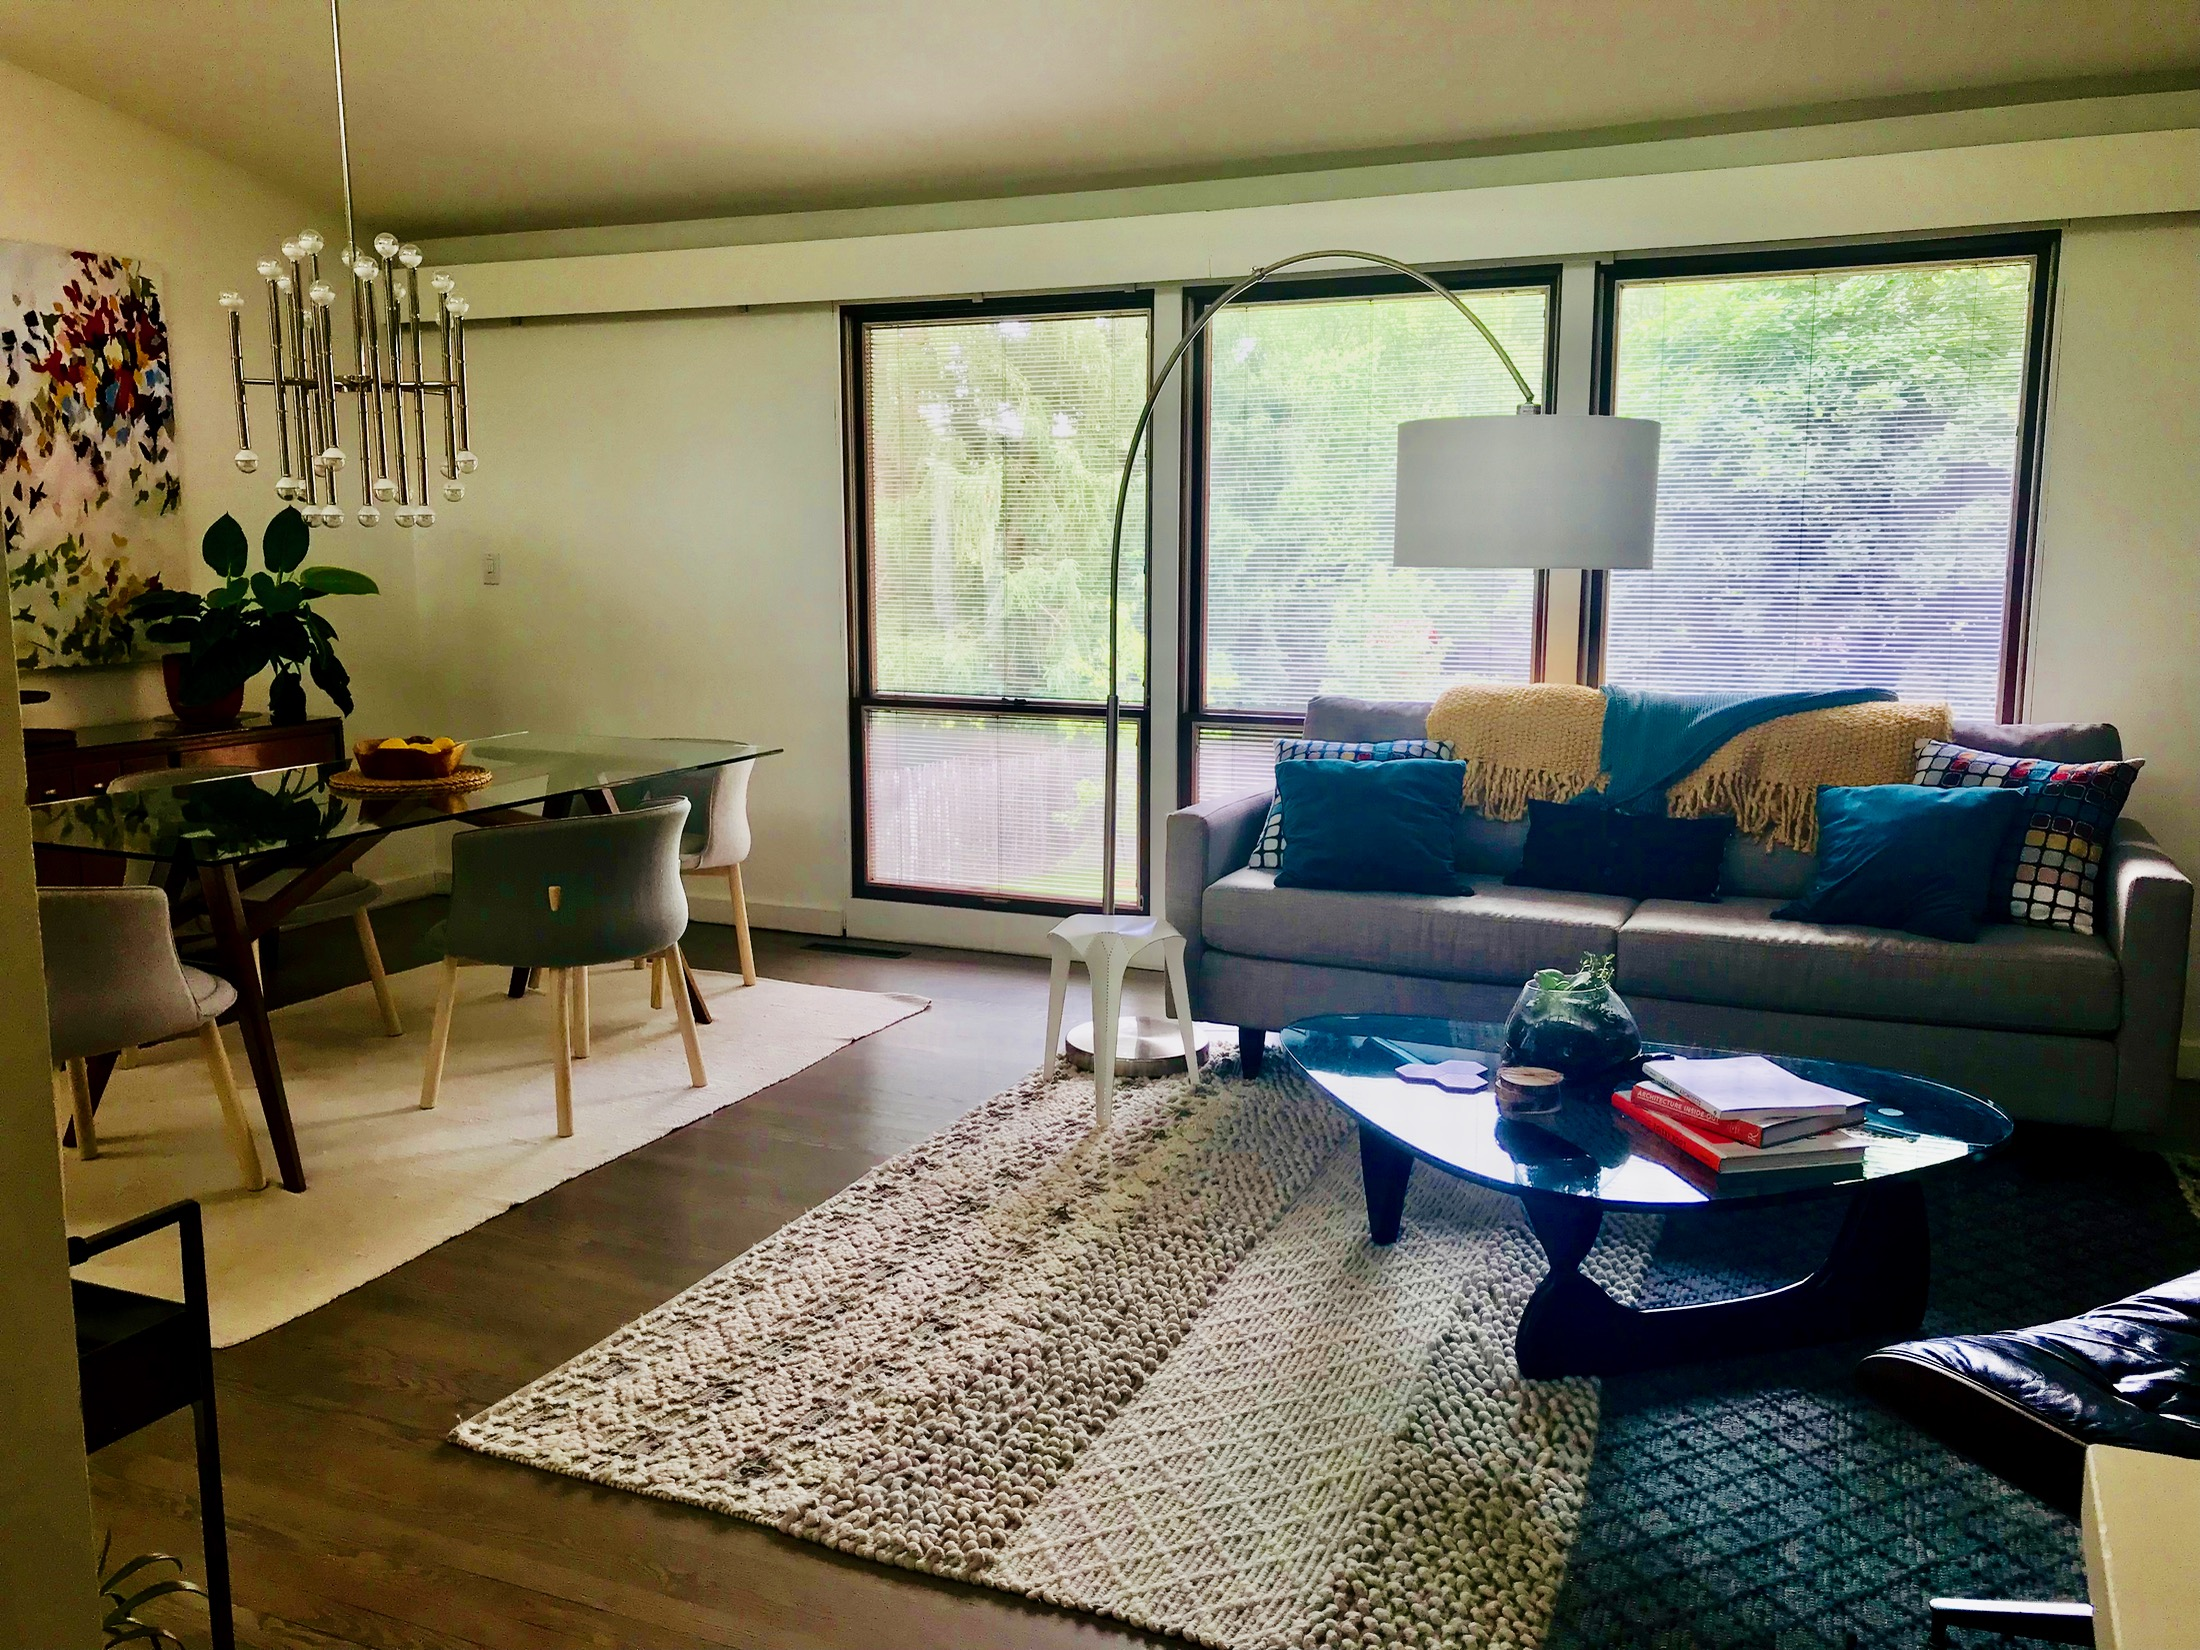 Open concept living room - dining area with large three part windows overlooking the backyard.